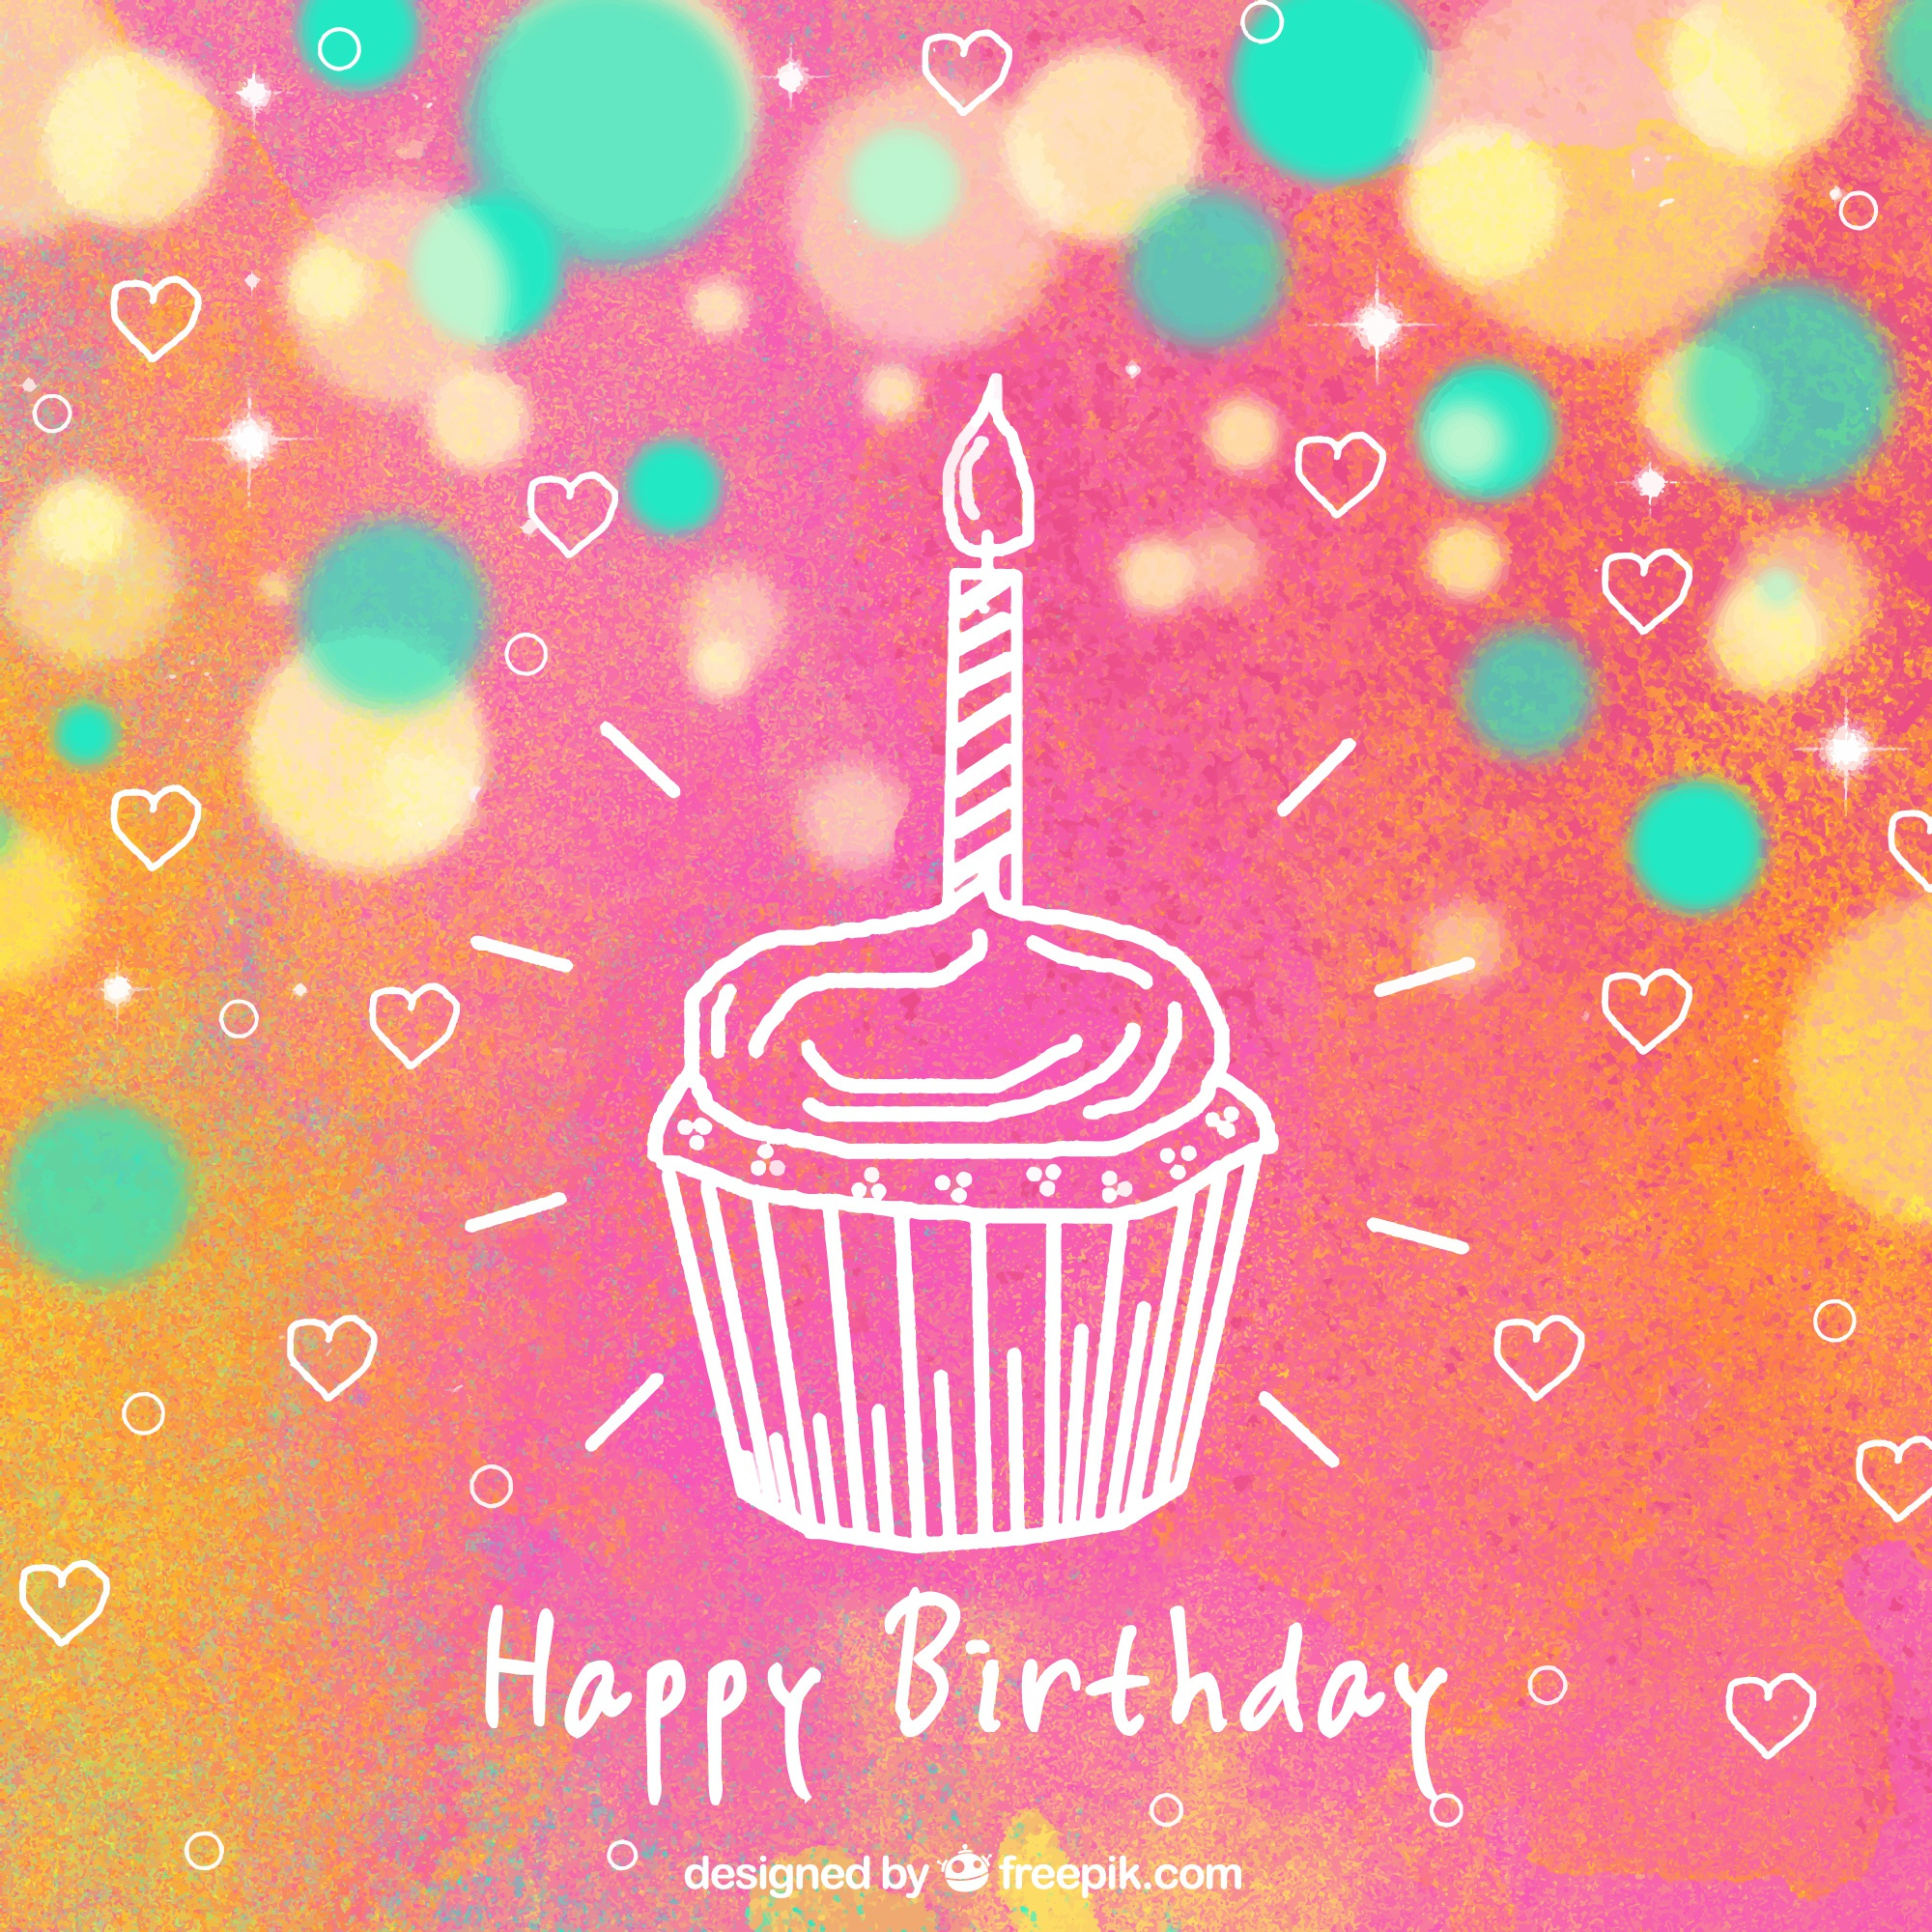 Colored birthday background with hearts and cupcake